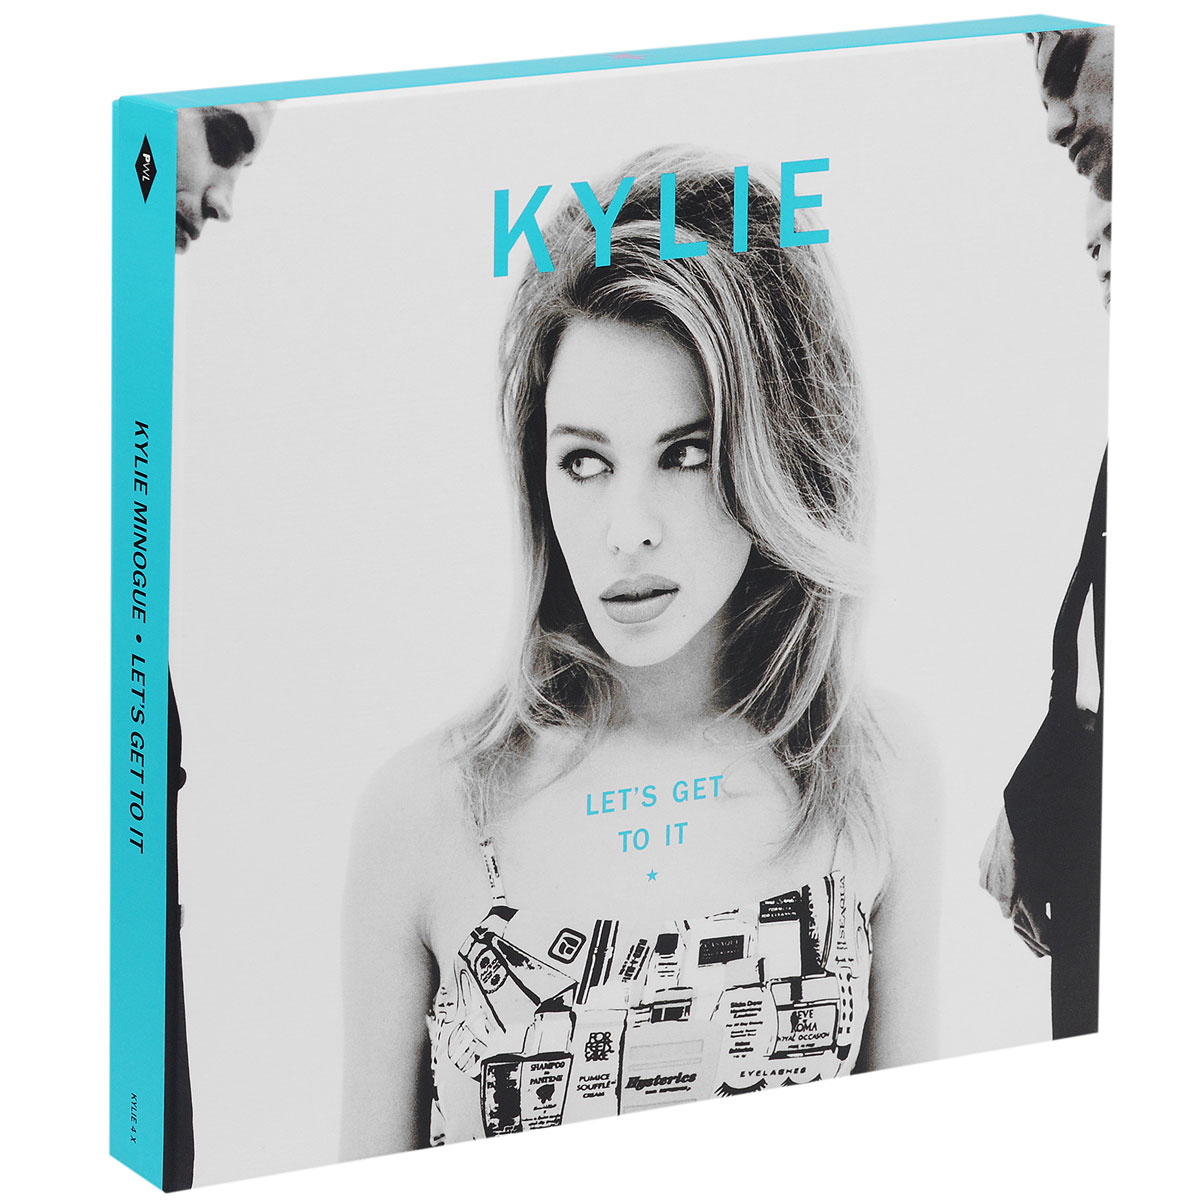 Кайли Миноуг Kylie Minogue. Let's Get To It (2 CD + DVD + LP)